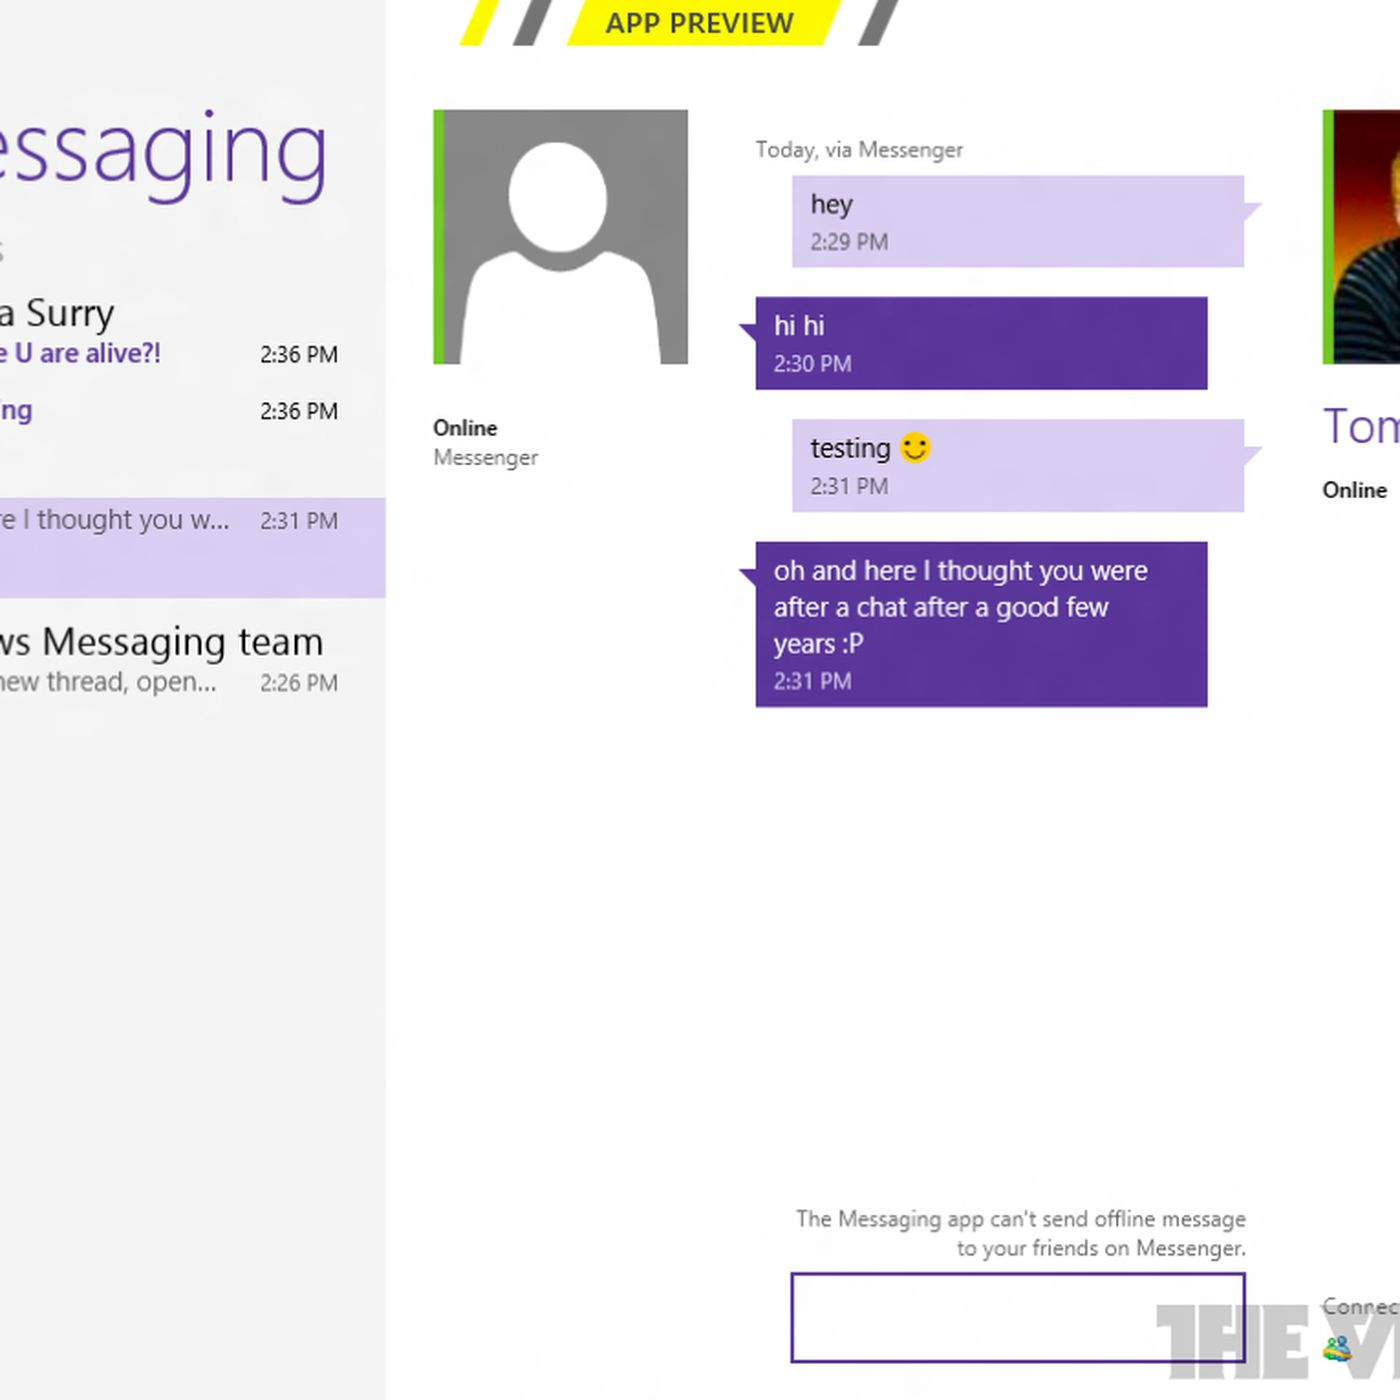 Windows 8: a closer look at Messaging, Mail, Photos, and